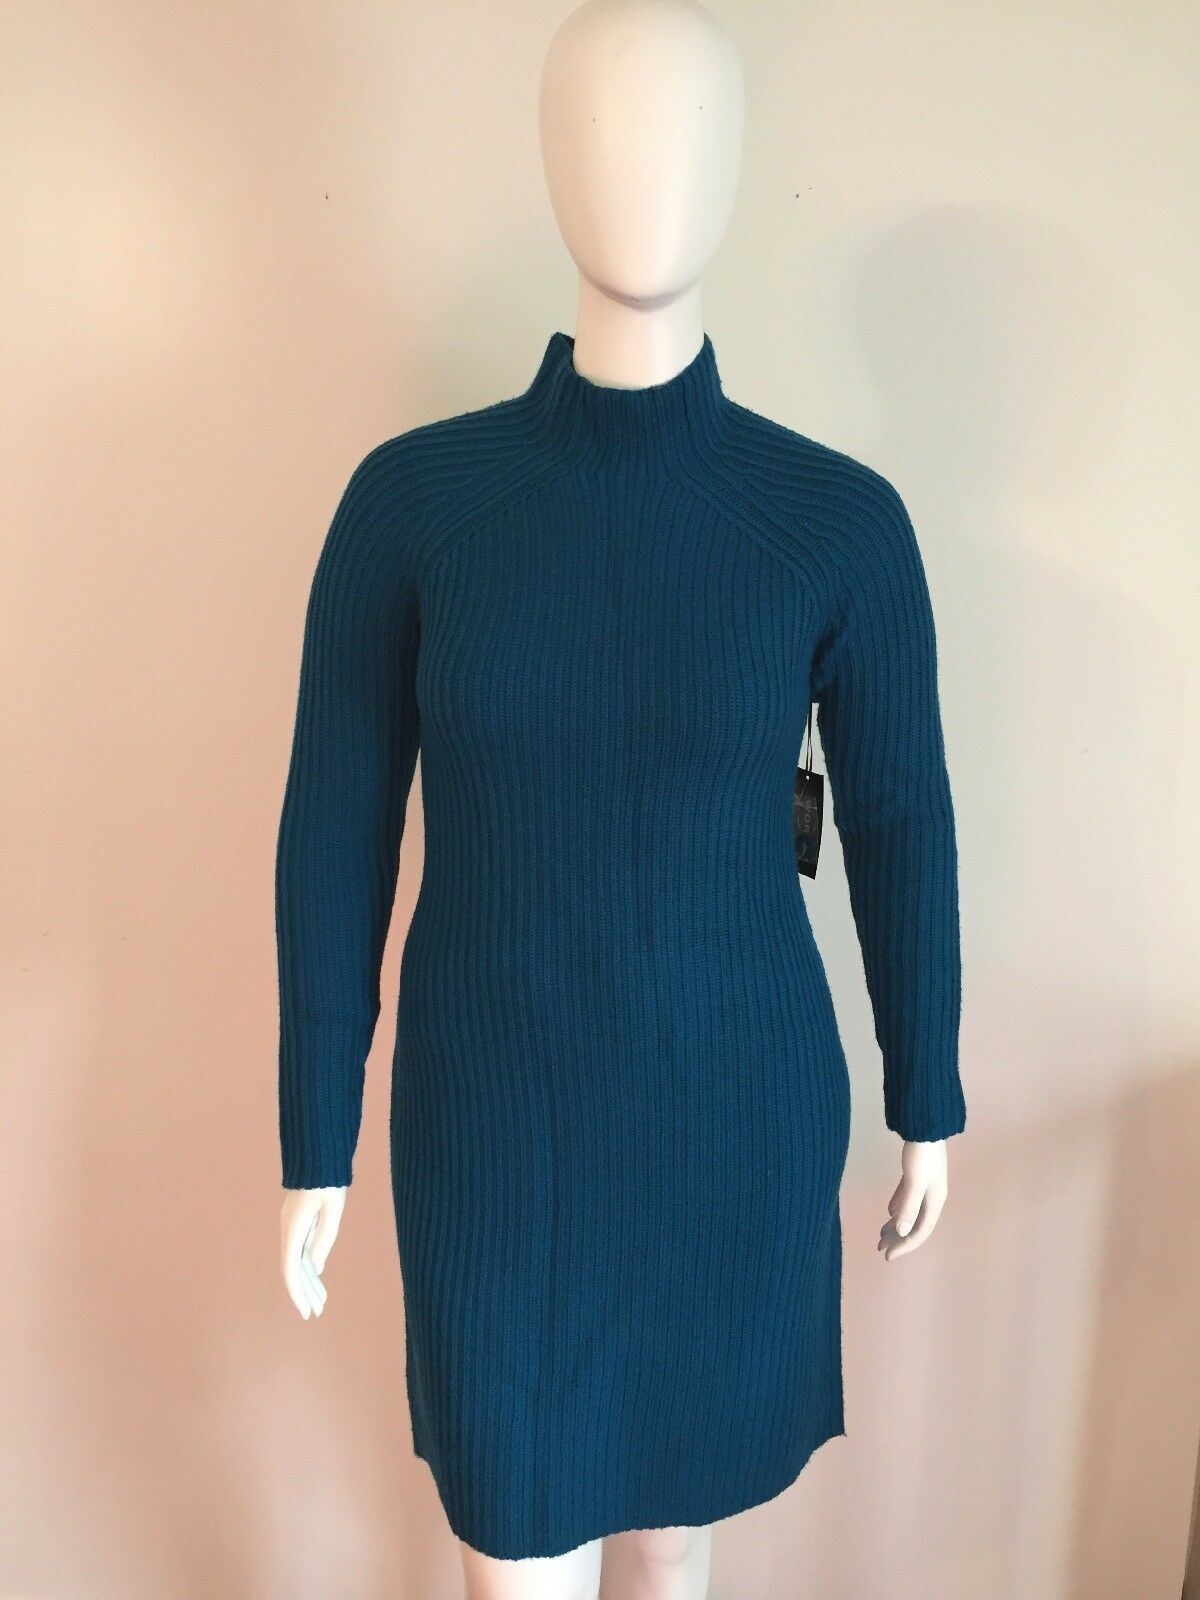 NWT Worth New York Sweater Dress Size M